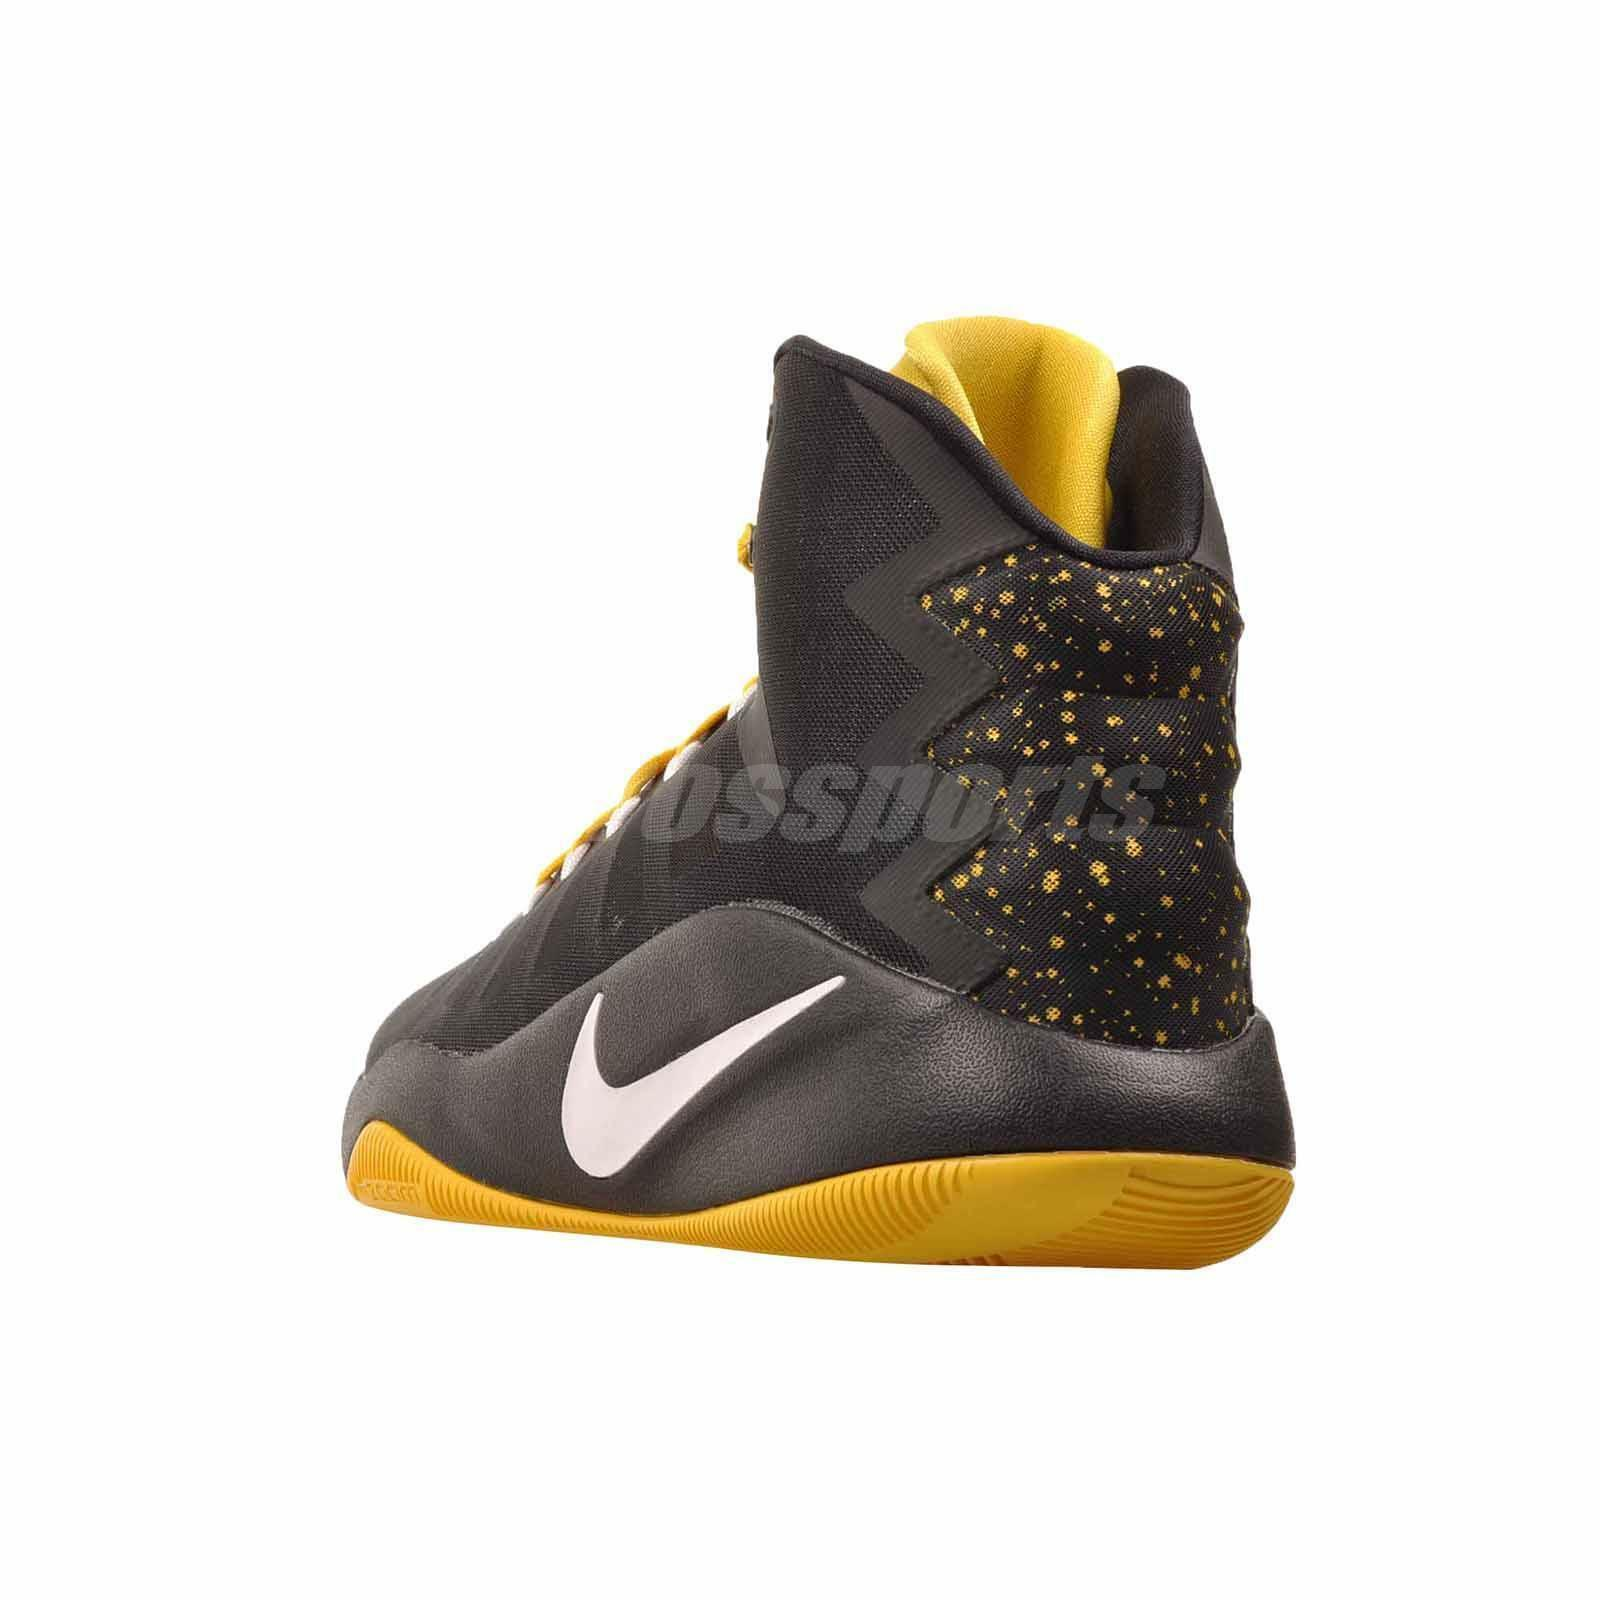 4a5edc59dcda ... germany nike hyperdunk 2016 se mens basketball shoe mens 844362 017  black yellow 157de eb614